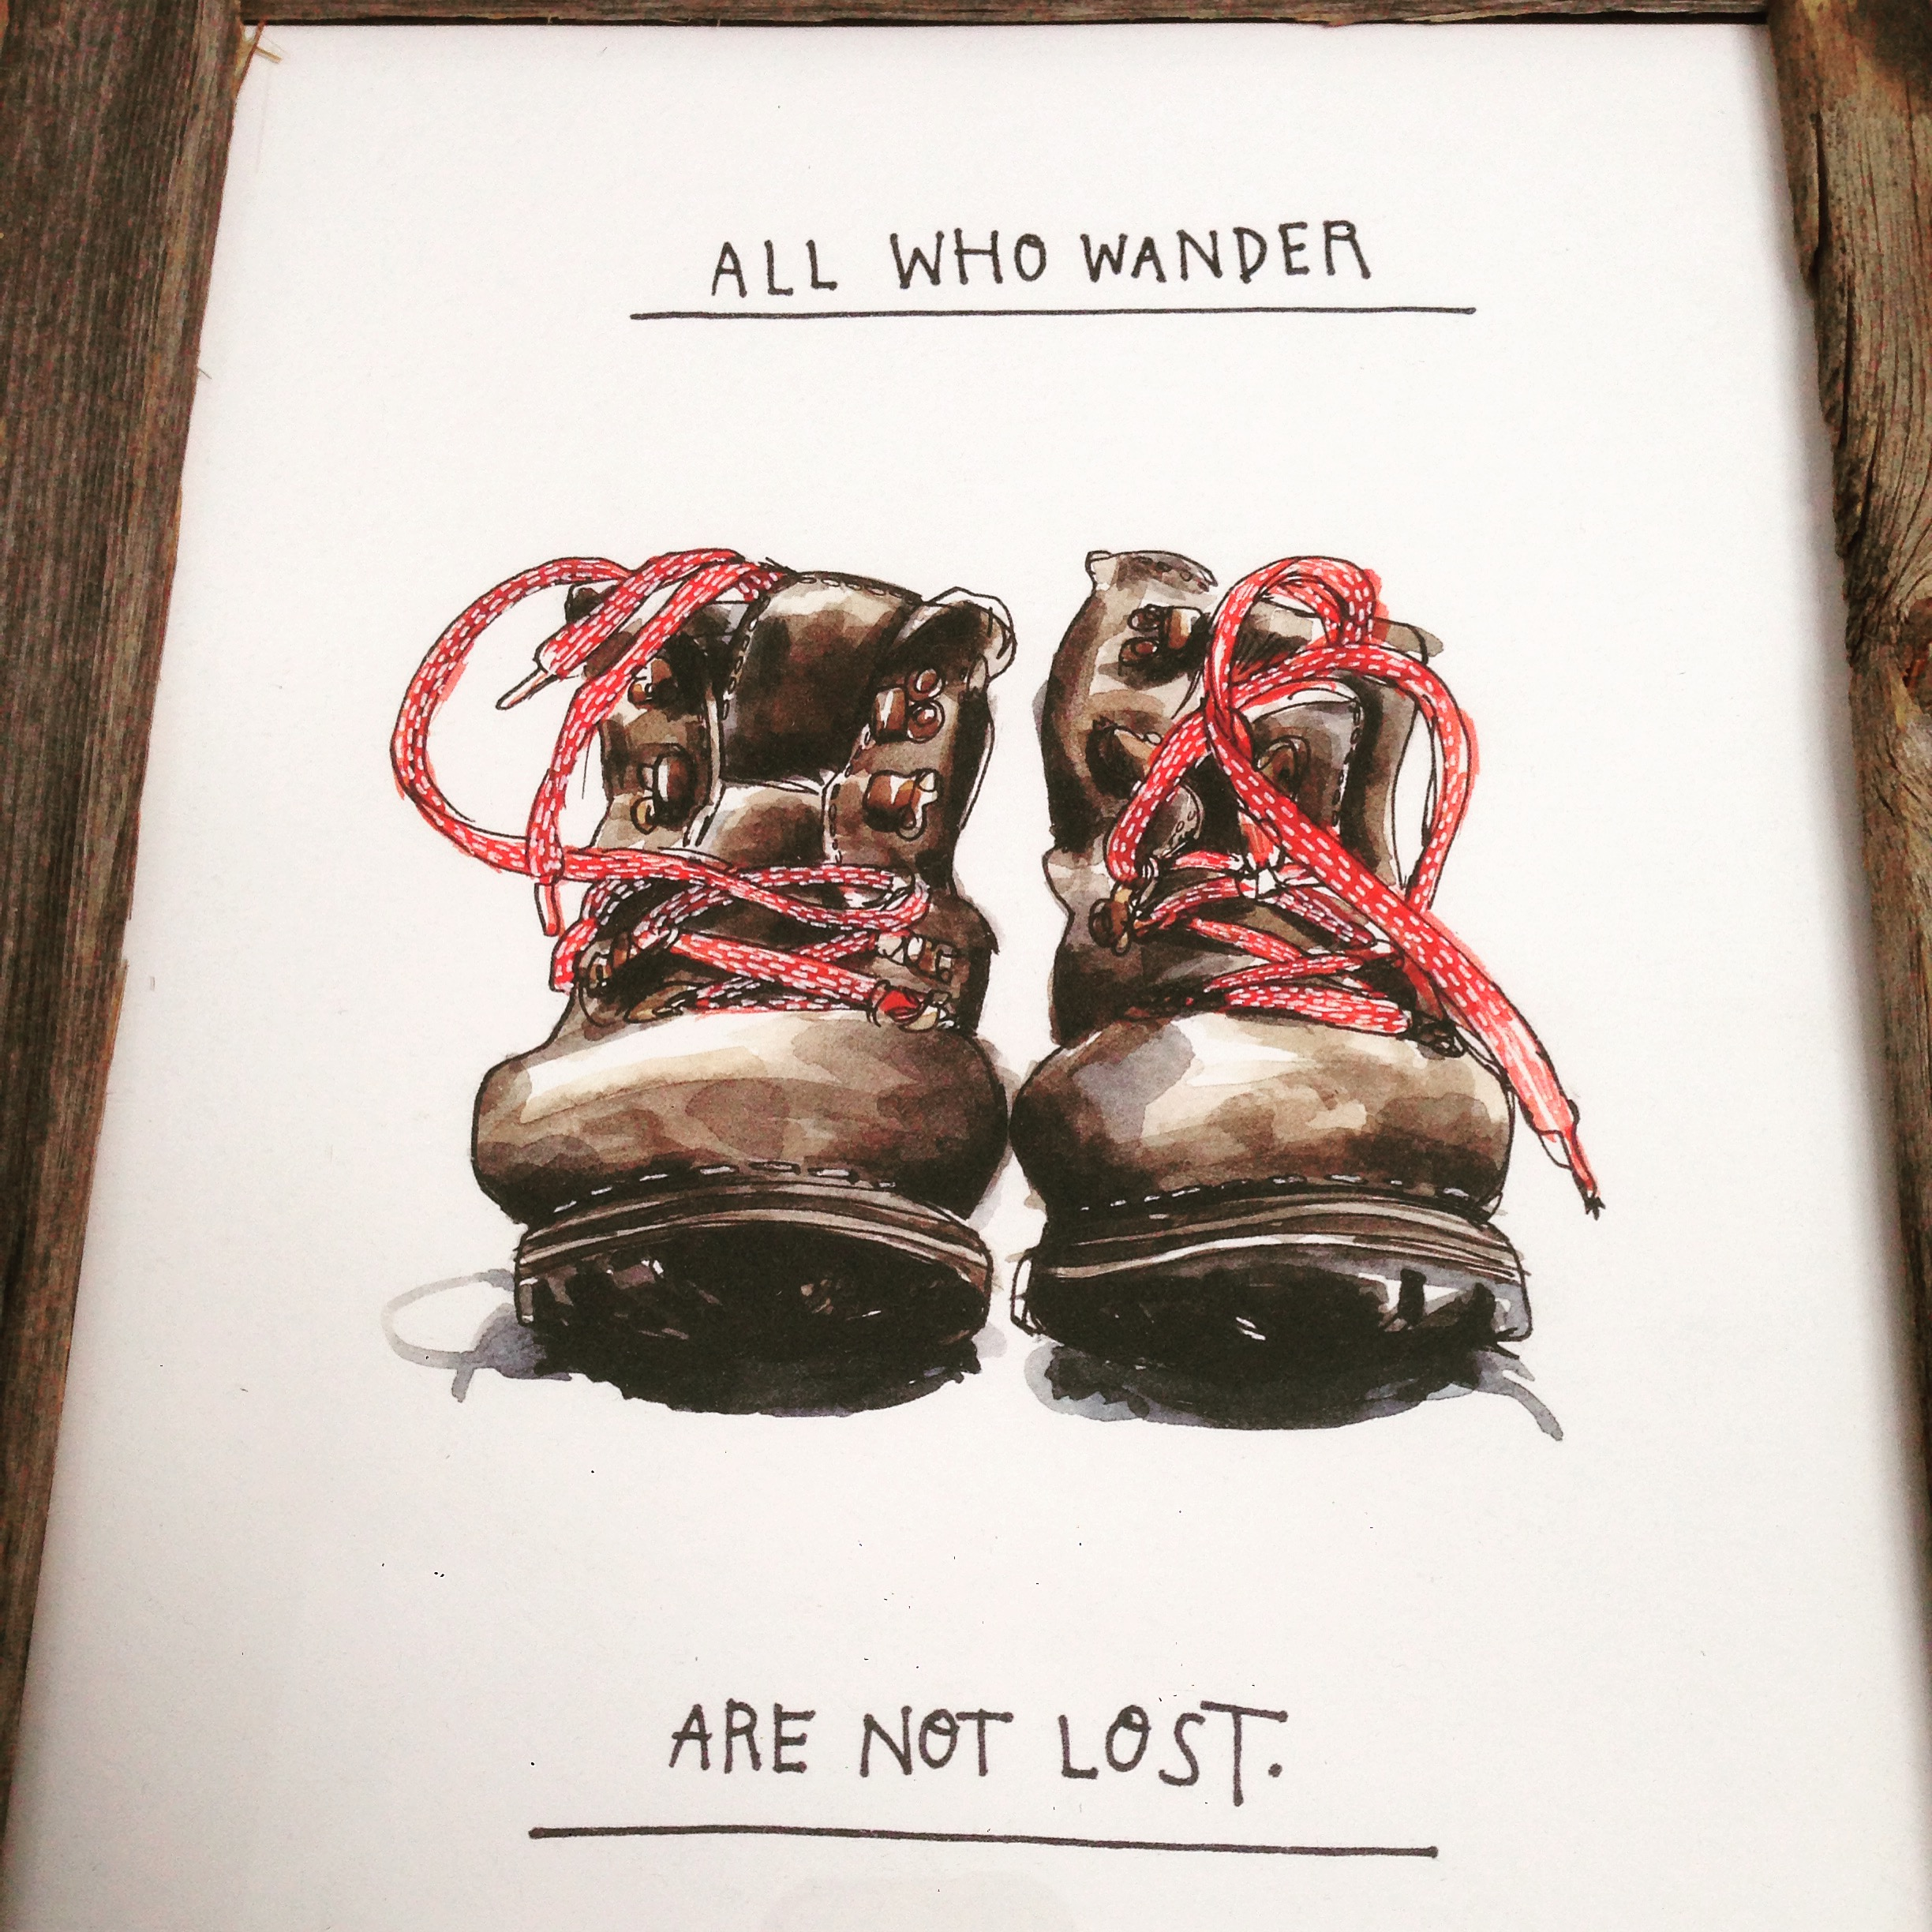 And when you are lost, it is ok to wander. A great wendy macnaughton piece on the walls of basecamp hotel, Tahoe.